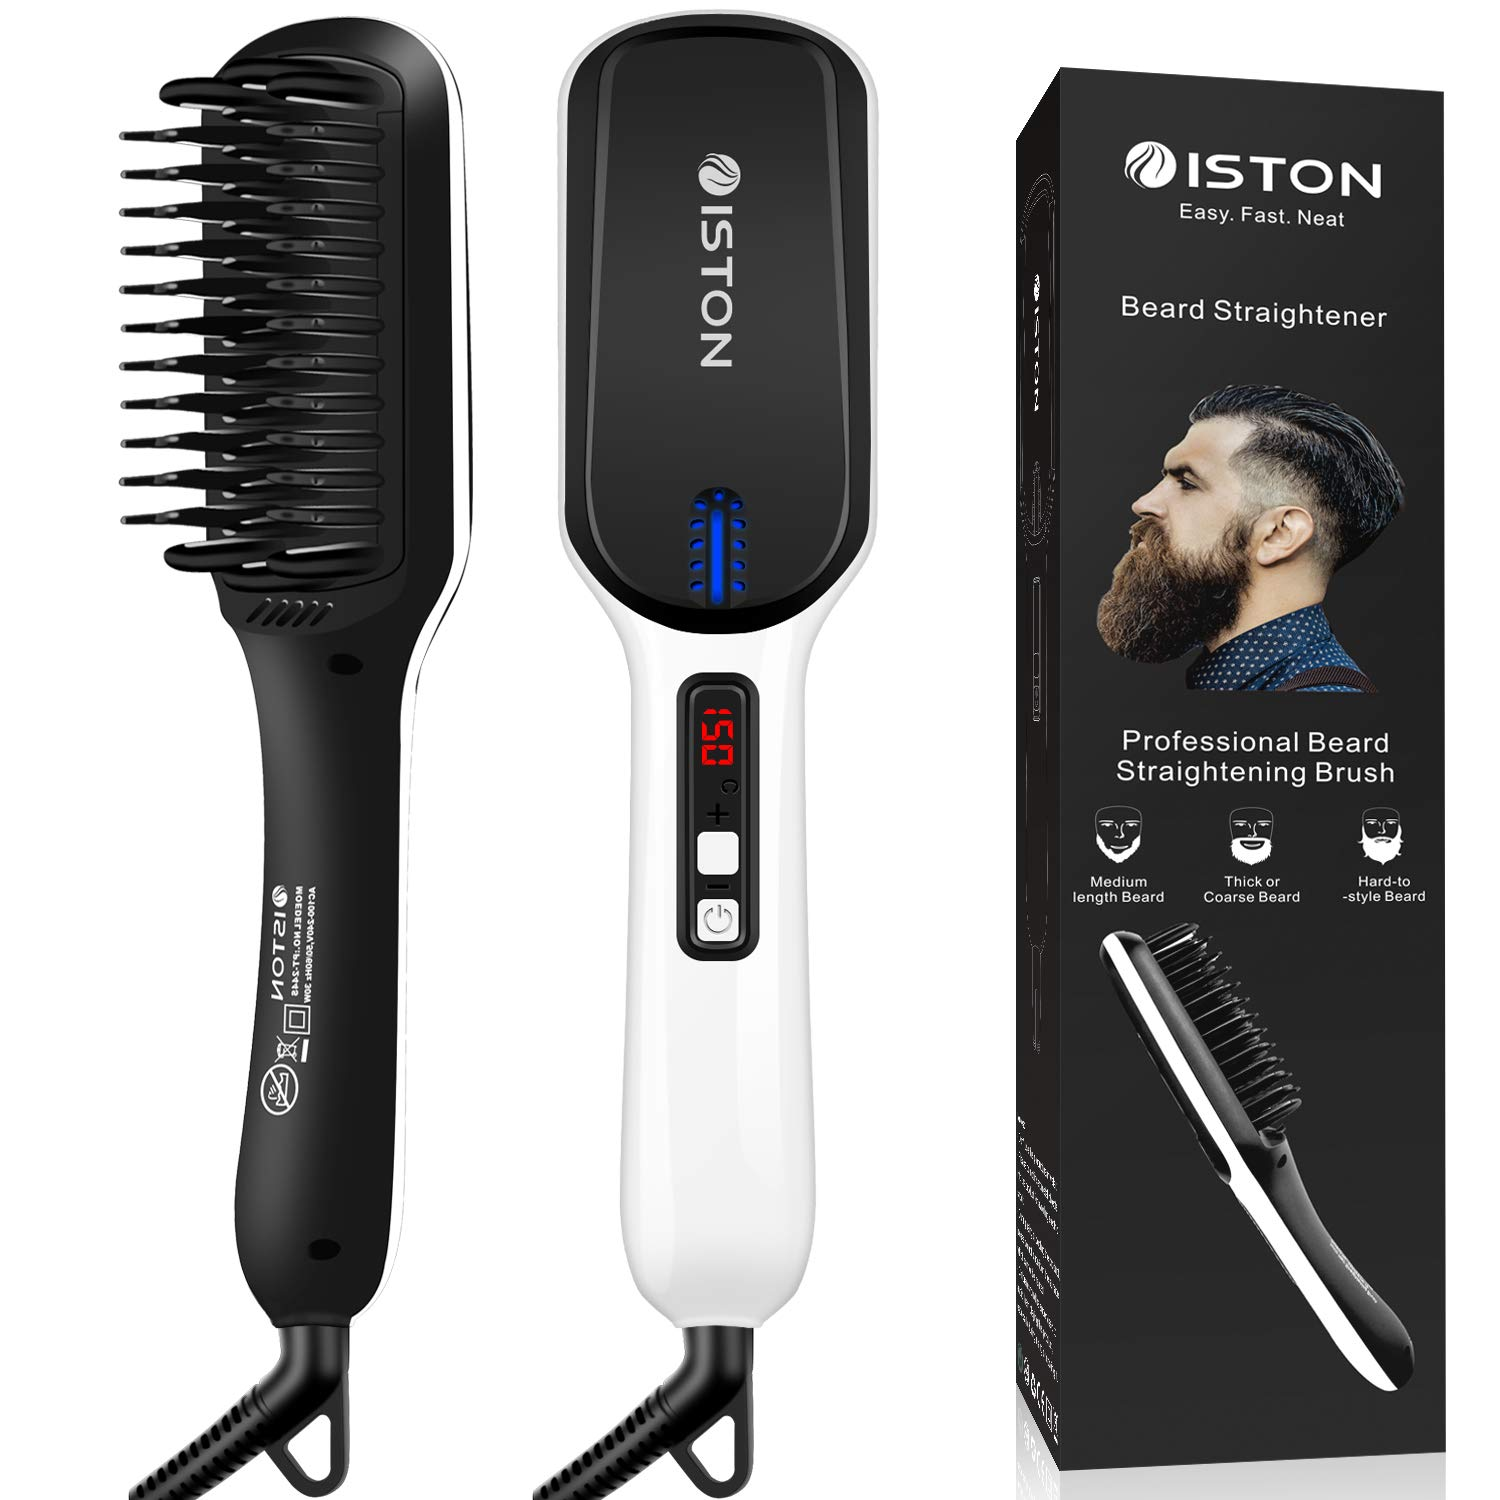 Beard Straightener for Men Ionic hair straightening brush Beard/Hair straightener with Anti-Scald Feature Portable Beard Straightener Comb with LED Display For Home & Travel by ISTON